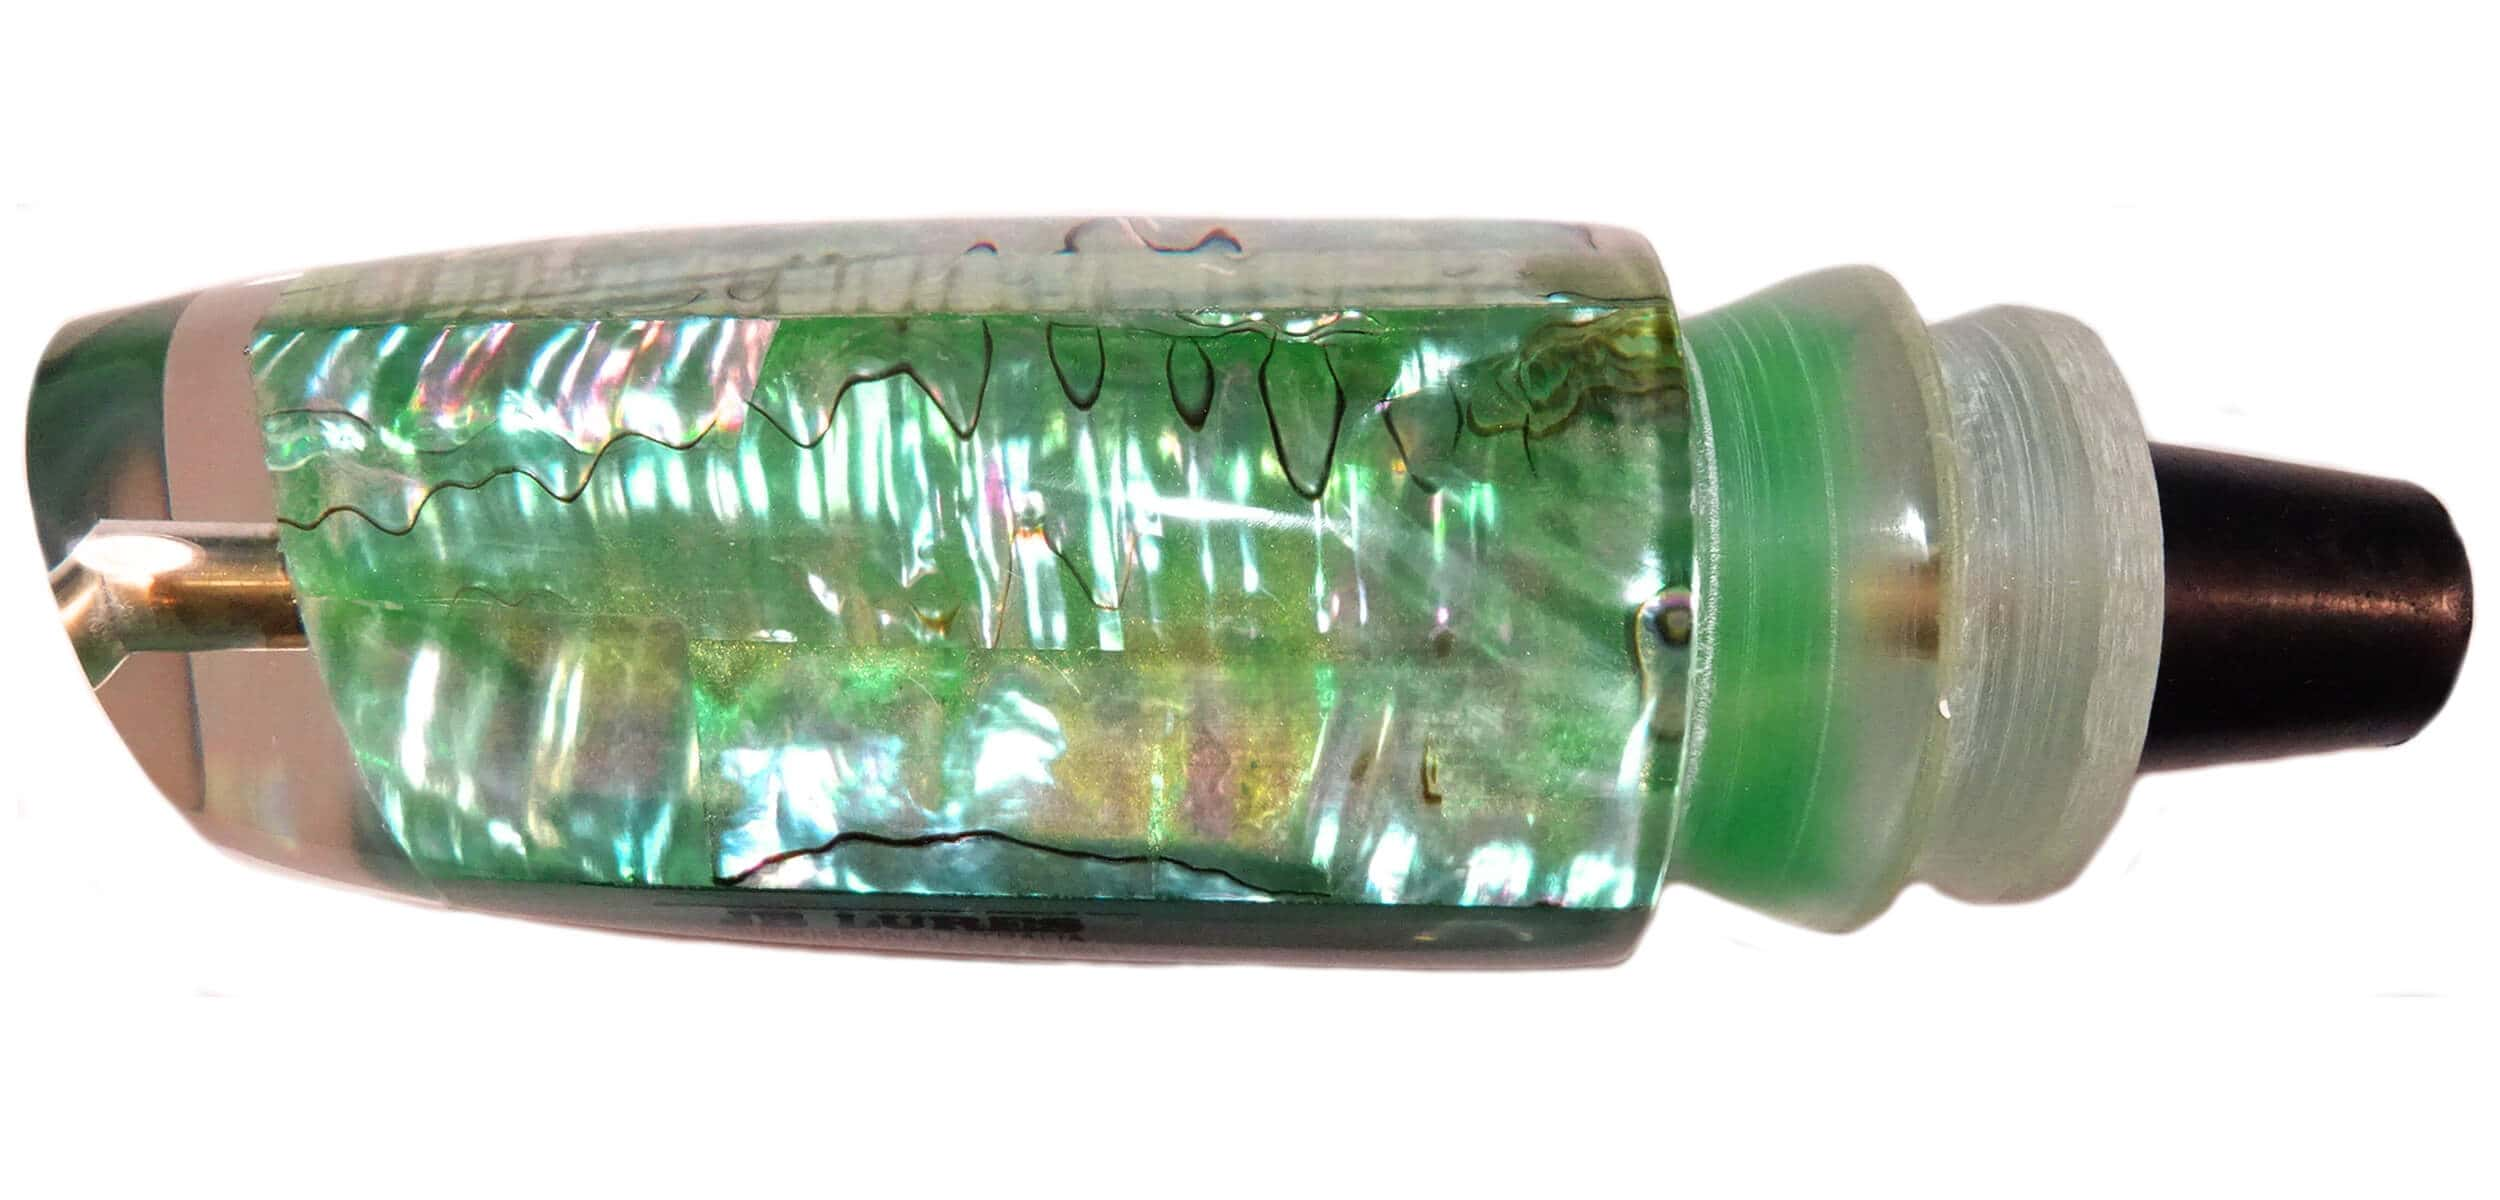 JB Lures - Plunger Series - Head - Mexican Green Abalone with Green Insert